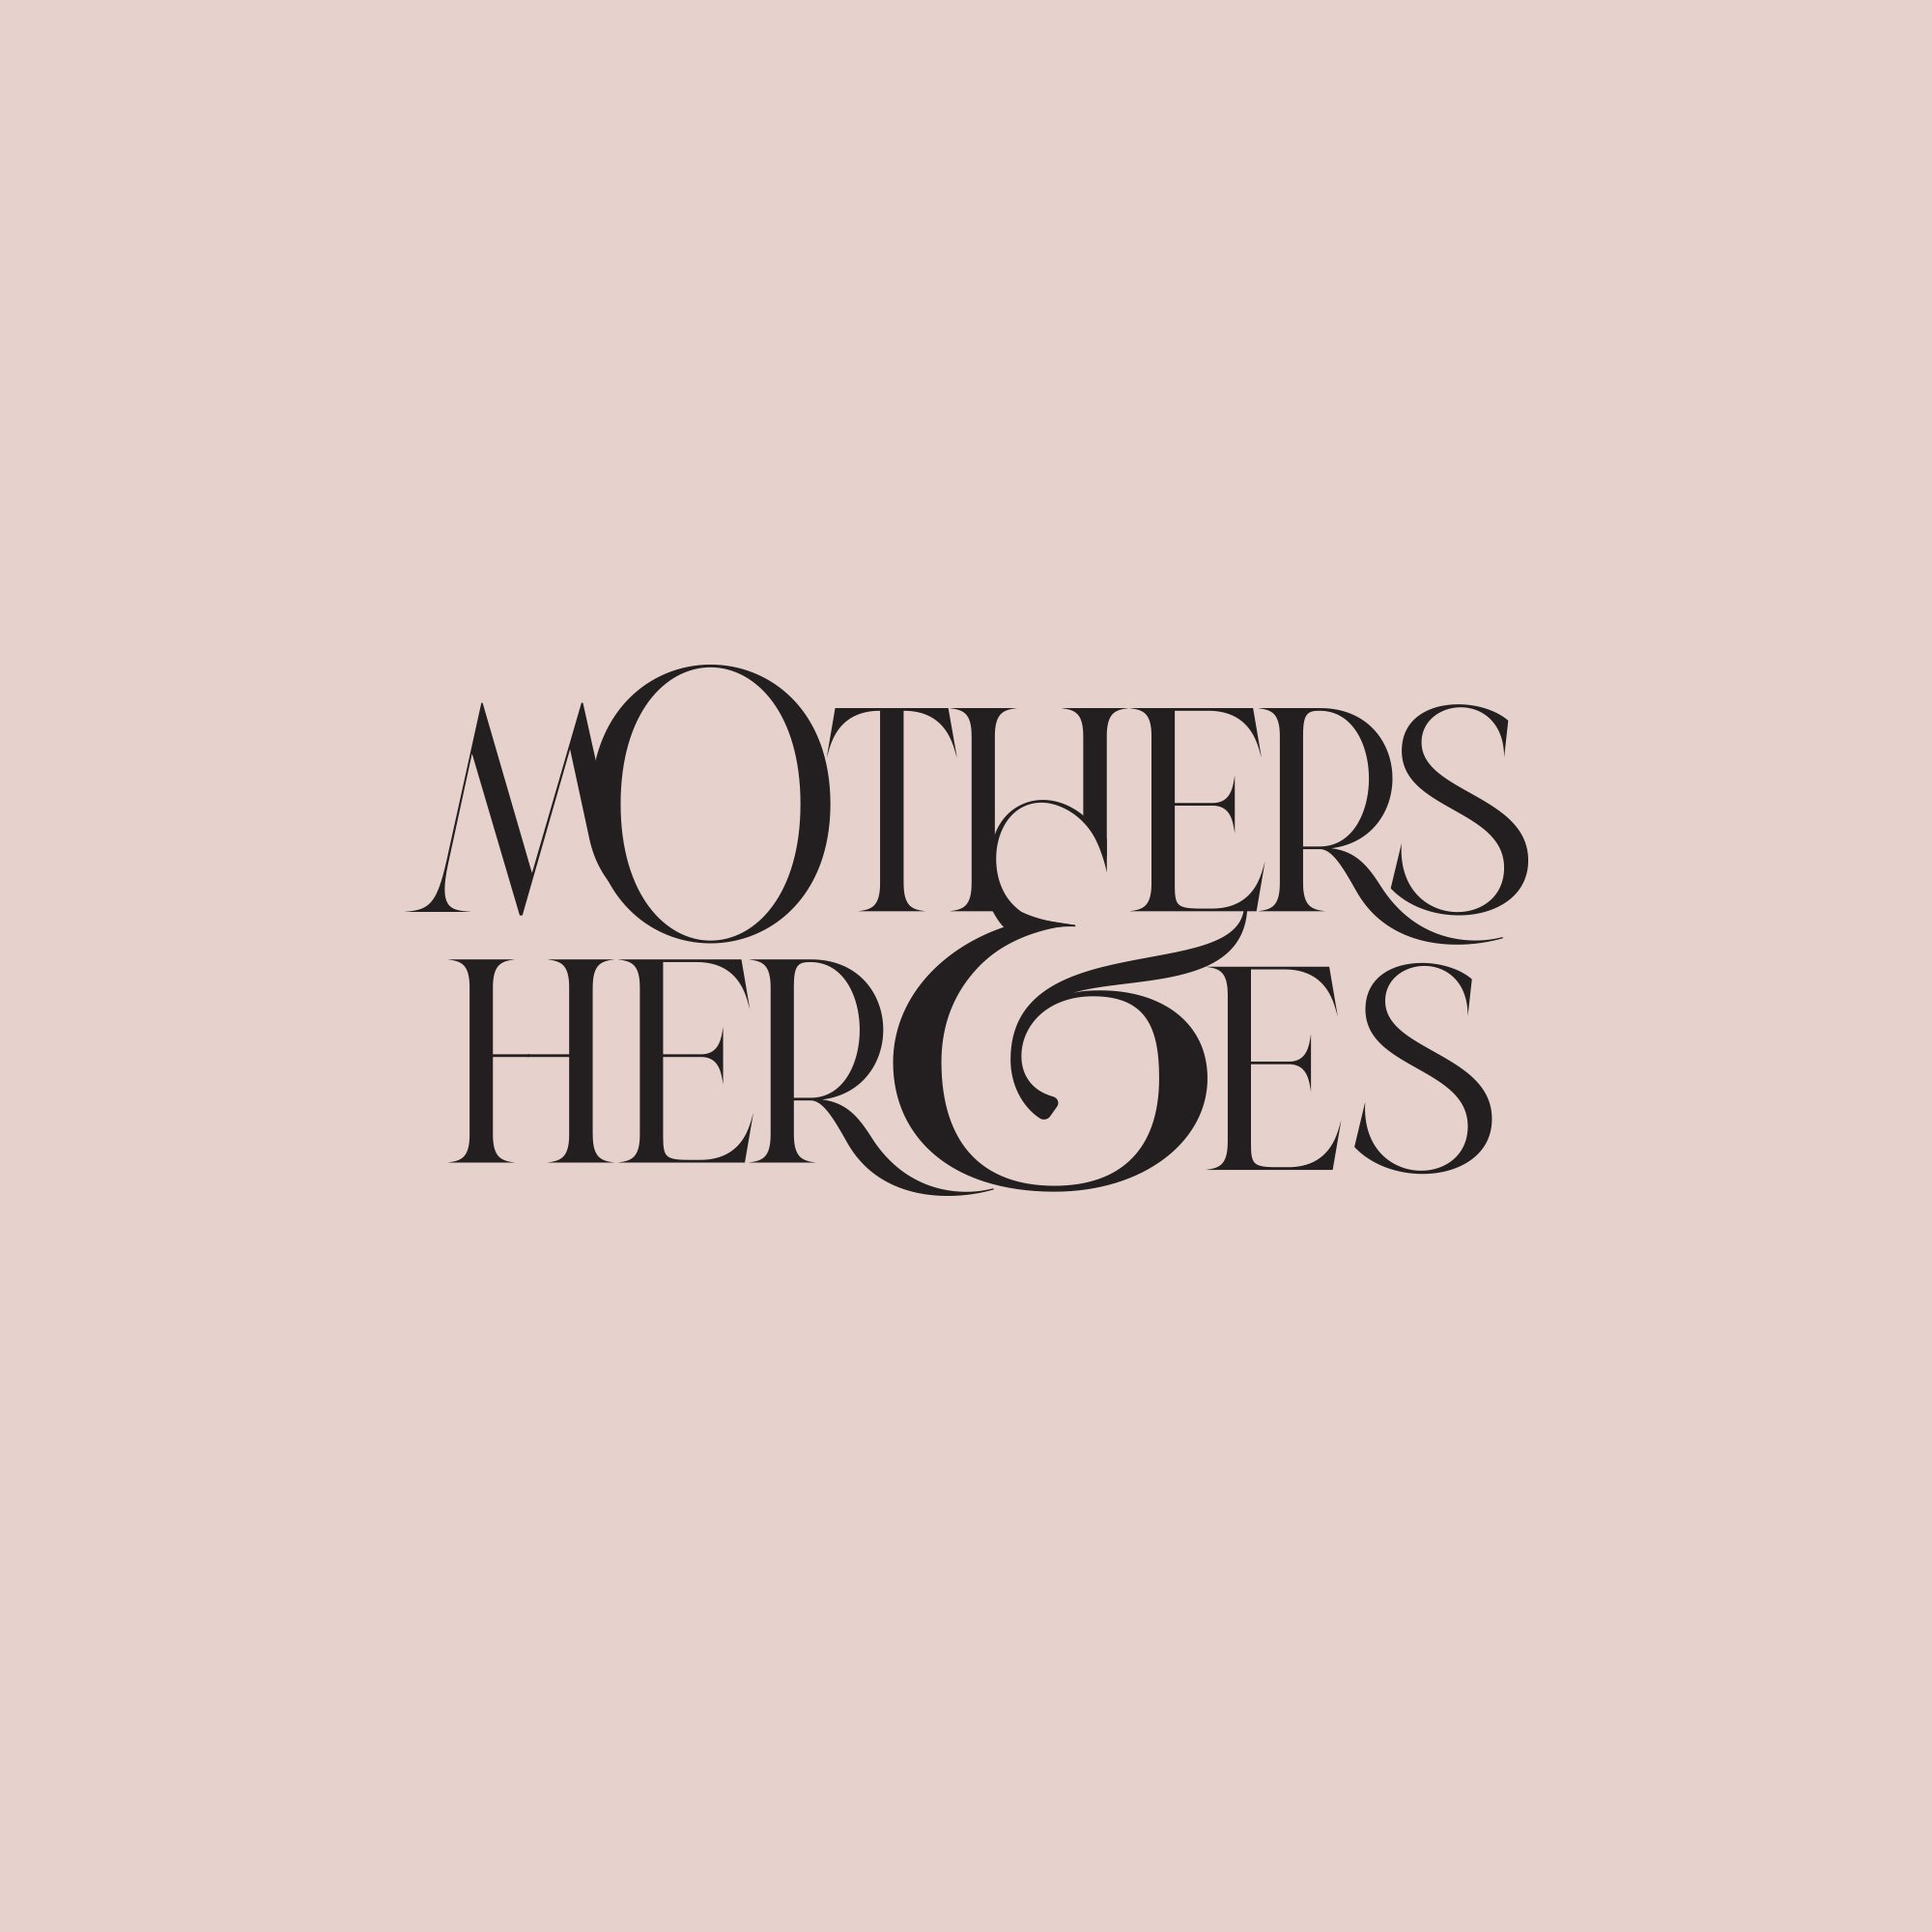 mothers and heroes, black text on blush background